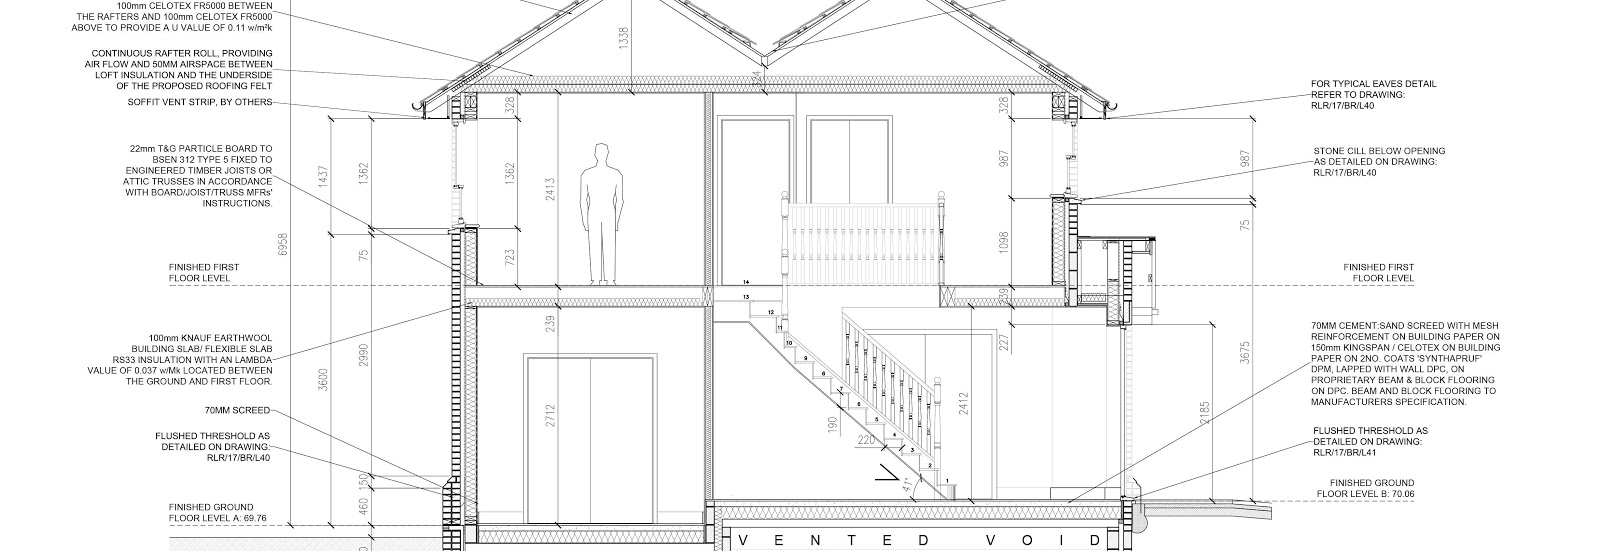 blueprint of a stwo storey home